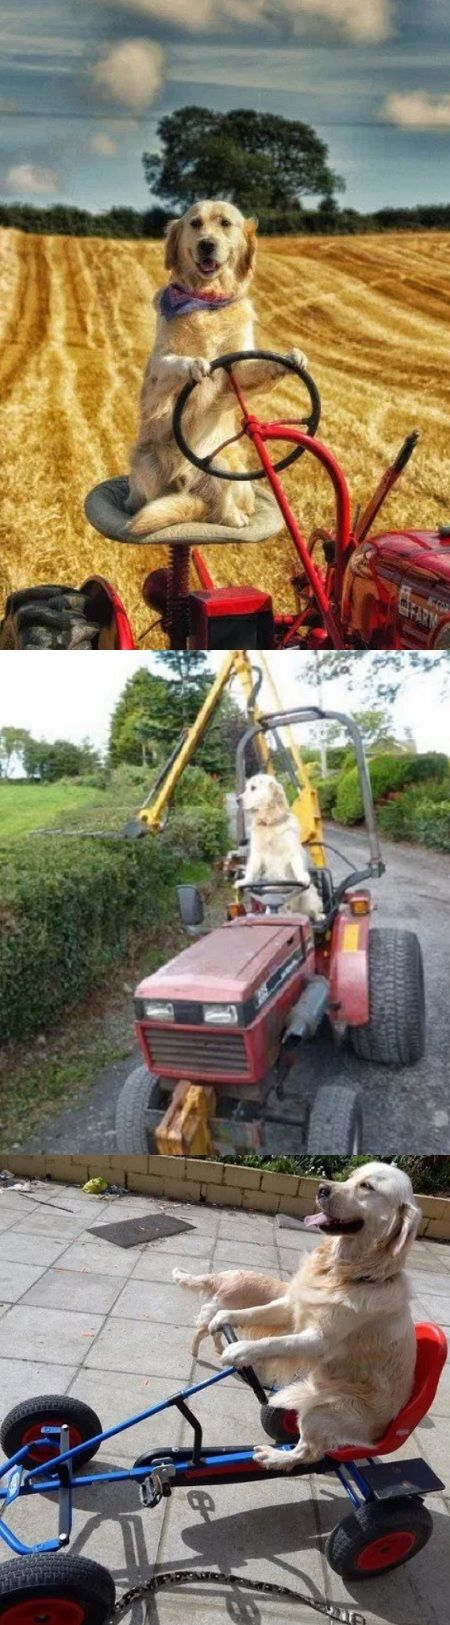 """Gives a whole new meaning to """"working dog""""   Wonder how long it'll take him to jump down once it's started up."""